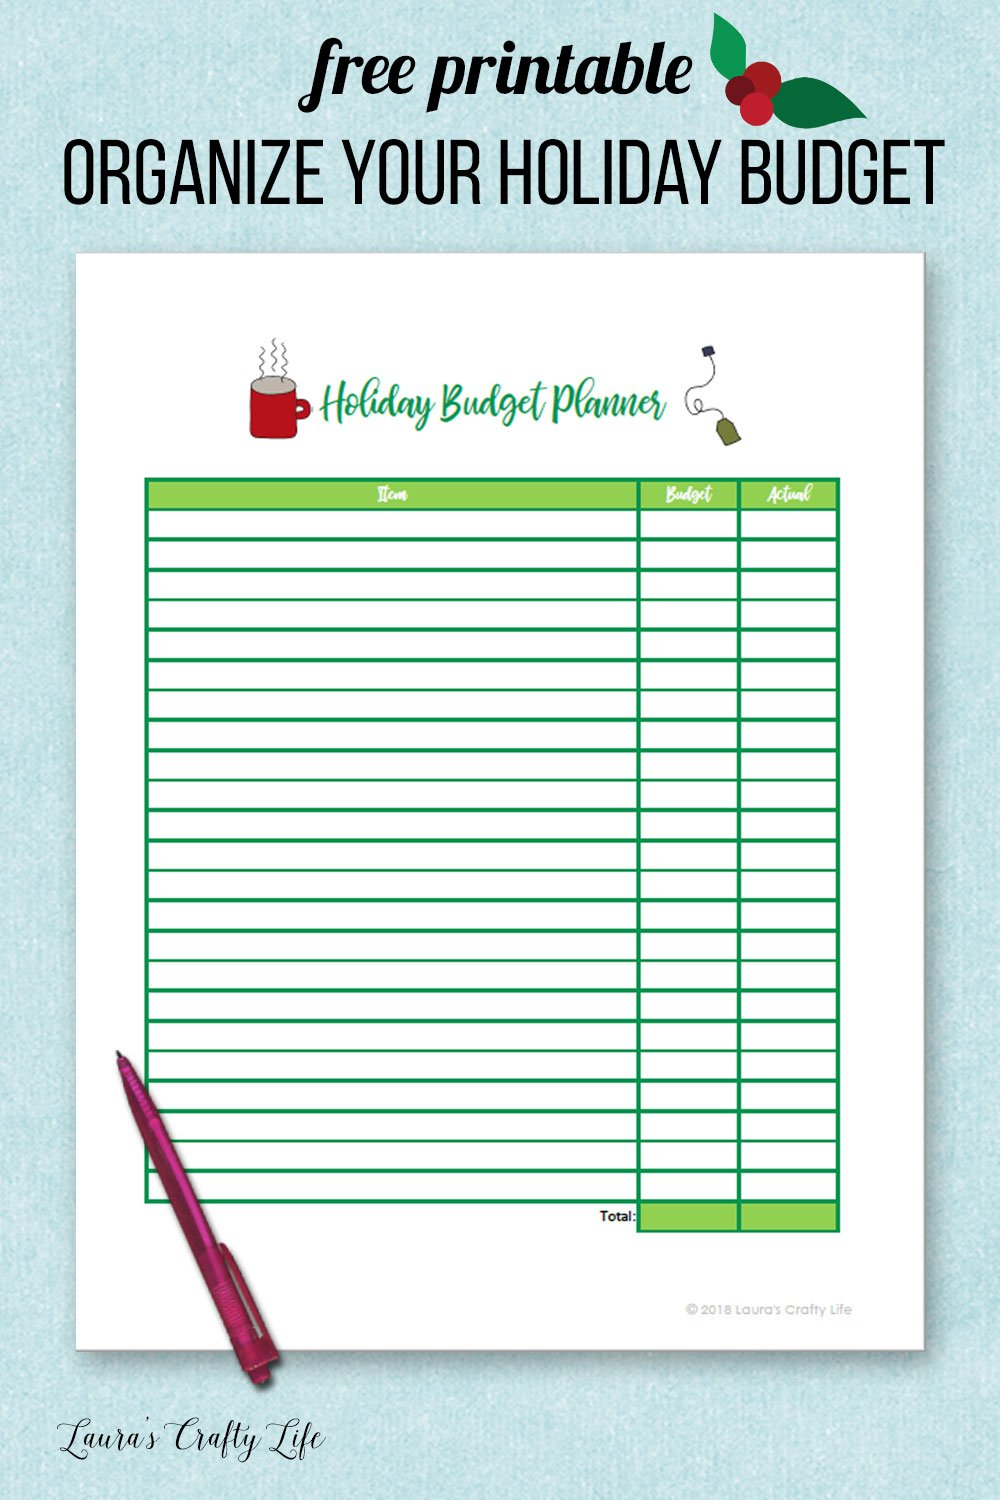 Free printable Organize Your Holidaiy budget planner